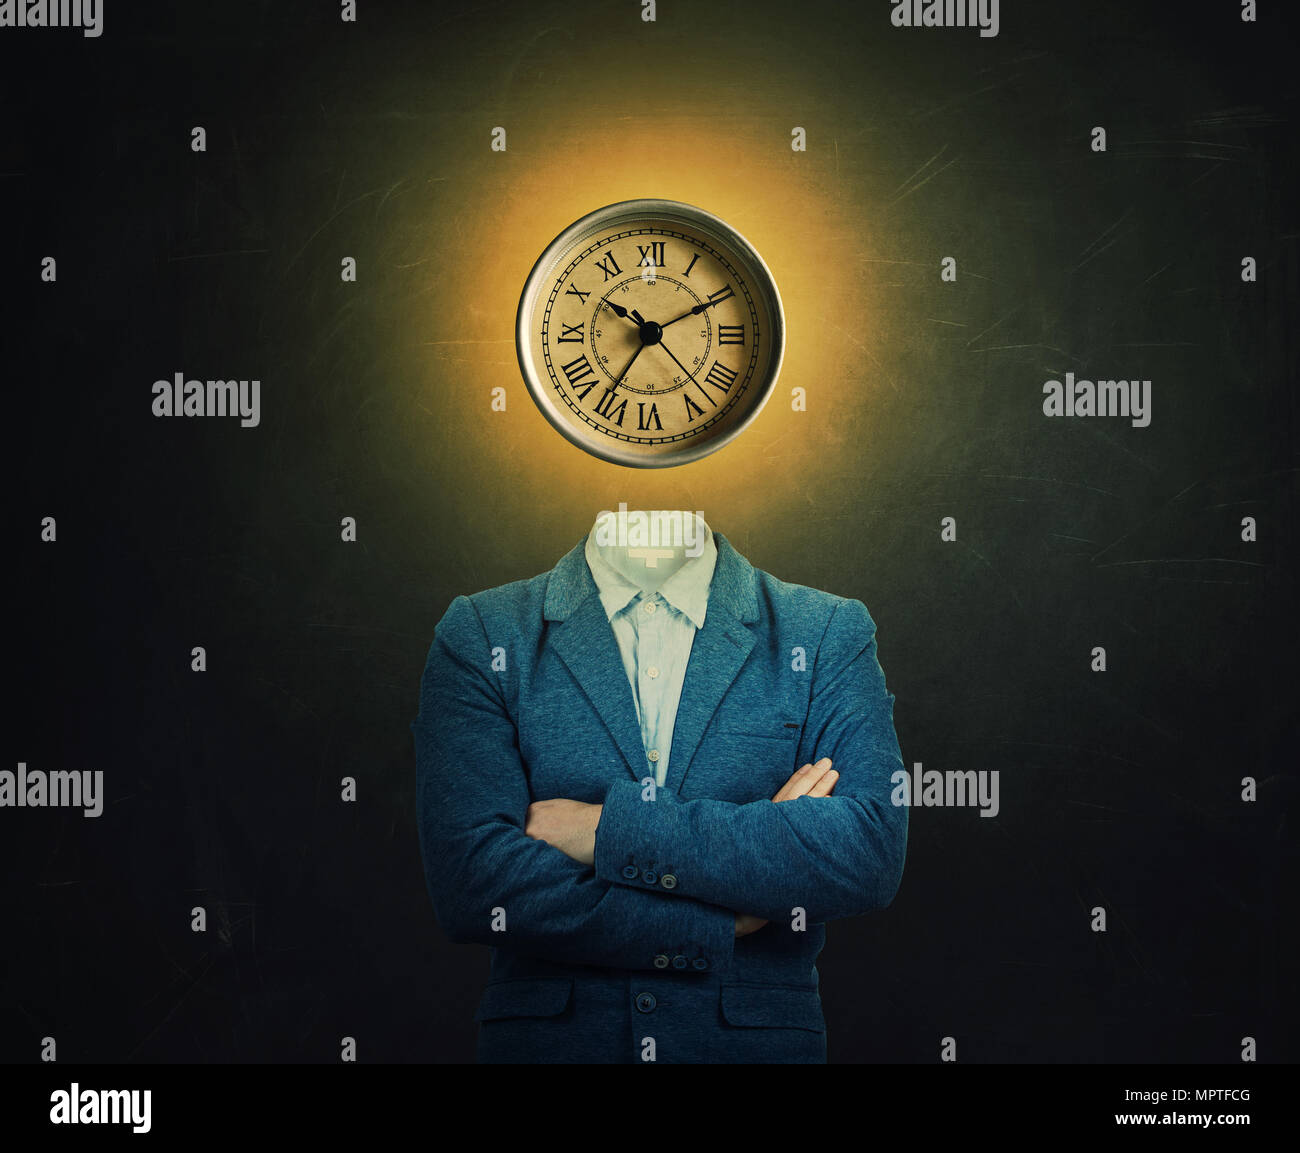 Surreal image of a serious professor with crossed hands and a clock instead of his head over chalkboard background. The concept of time in educational - Stock Image